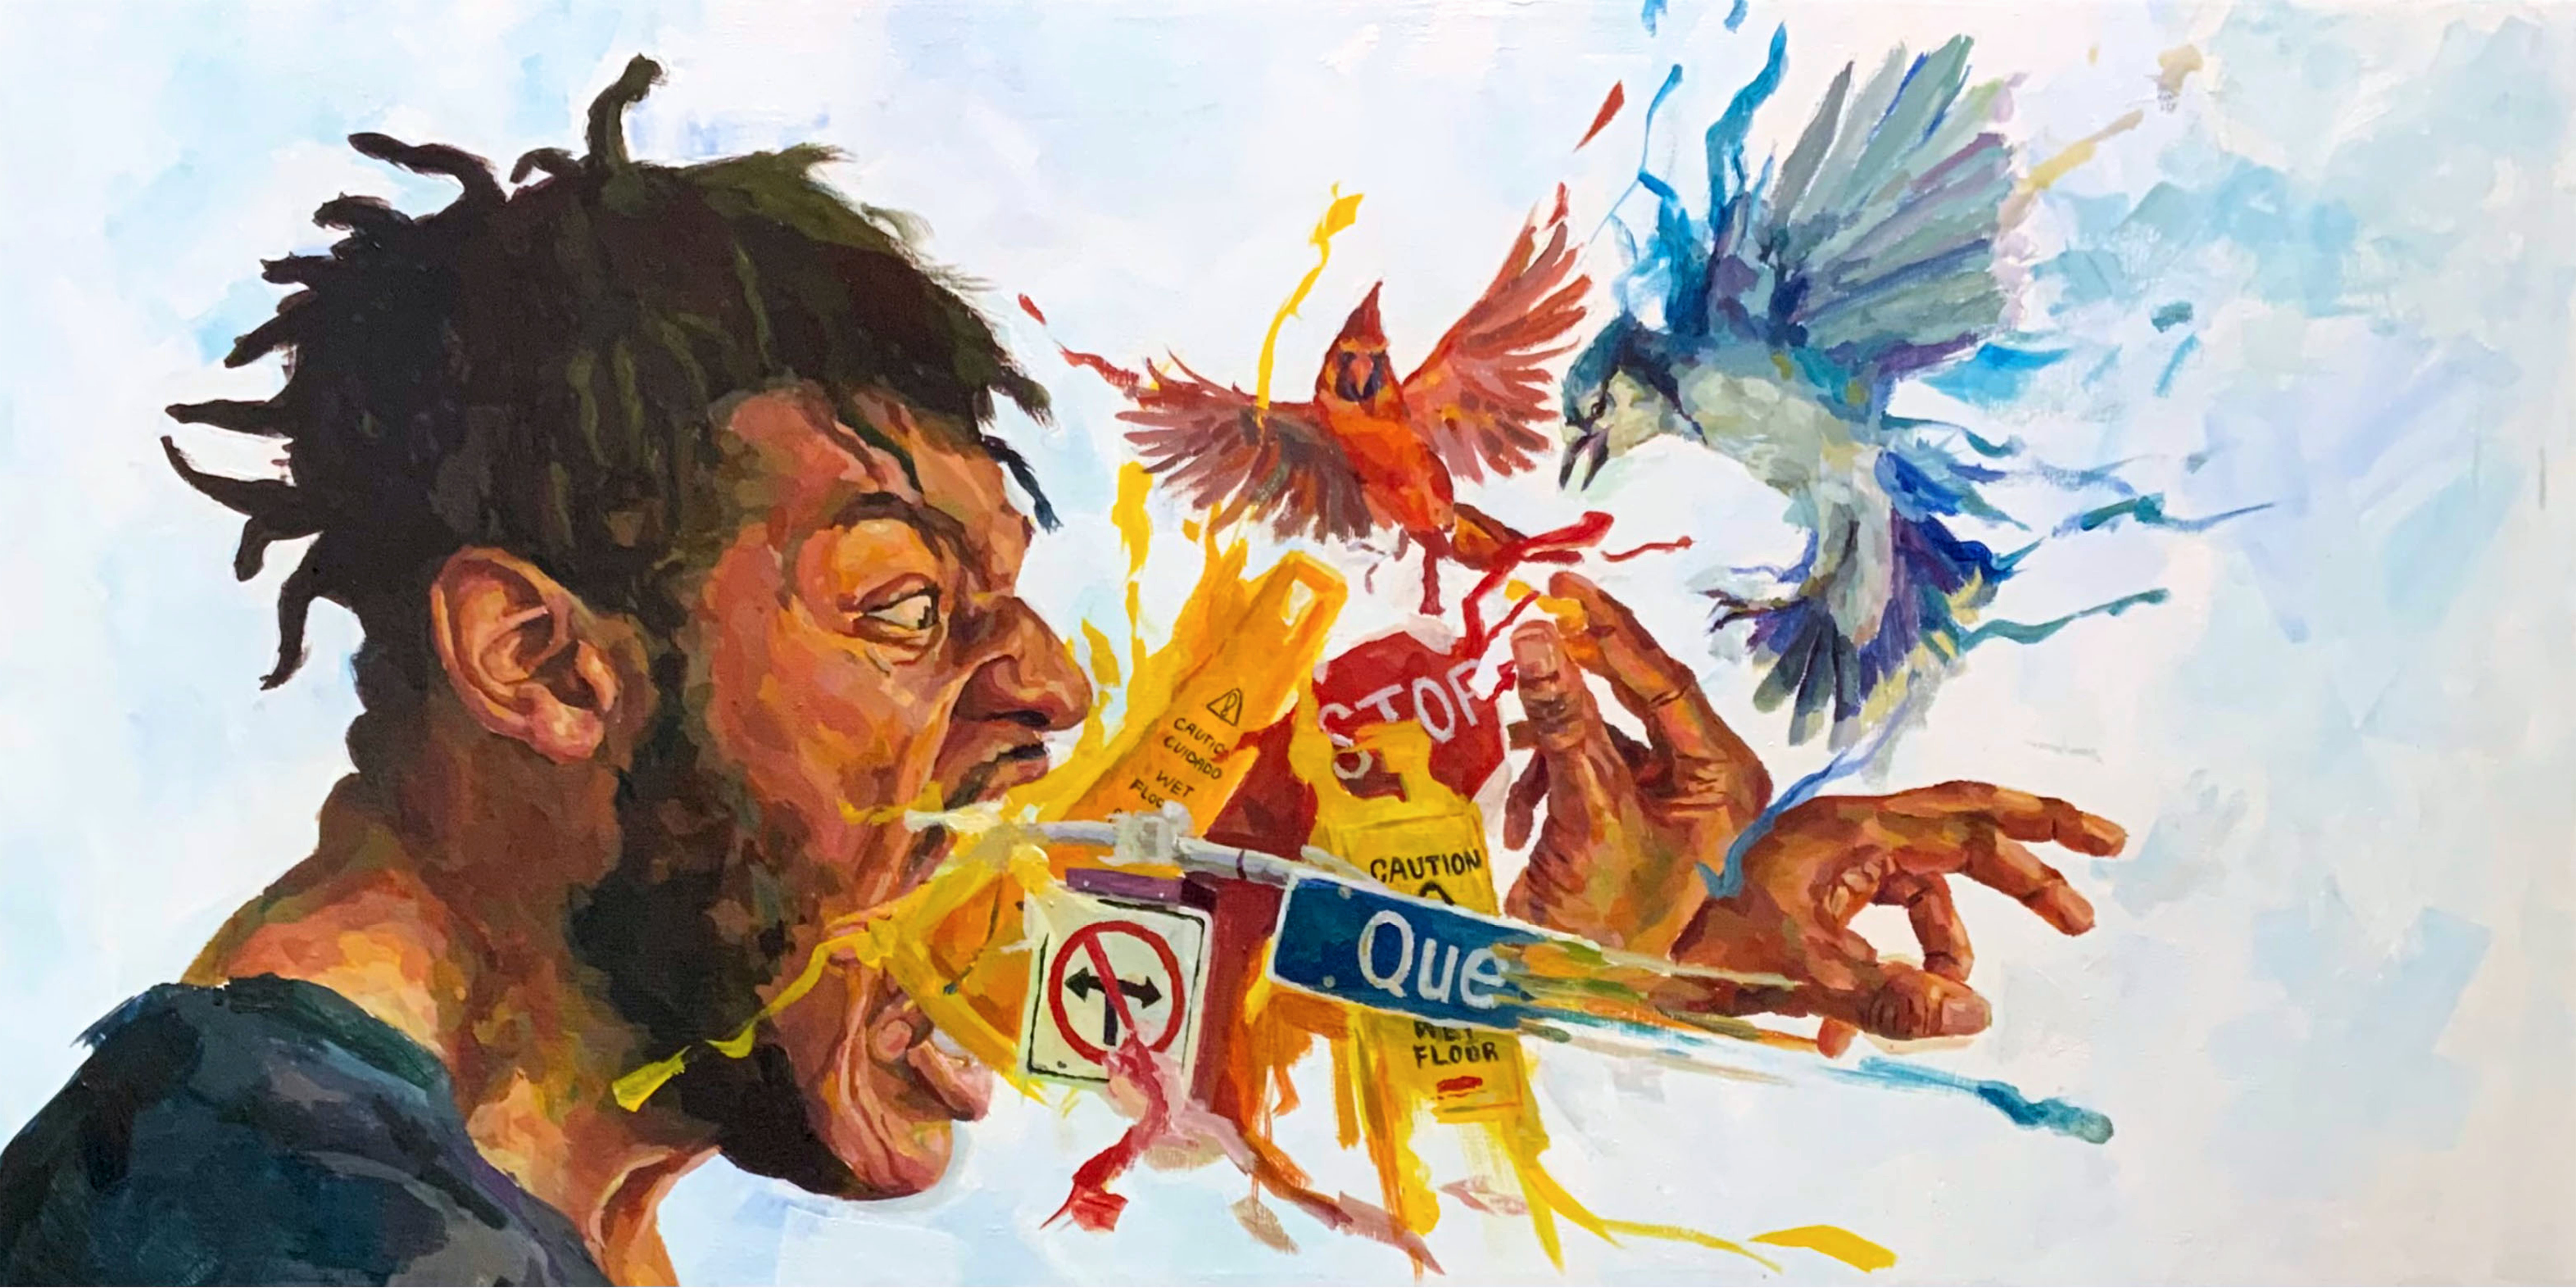 Self-portrait with objects and signals coming out of Richard's mouth. Representation the frustration and confusion caused by COVID-19